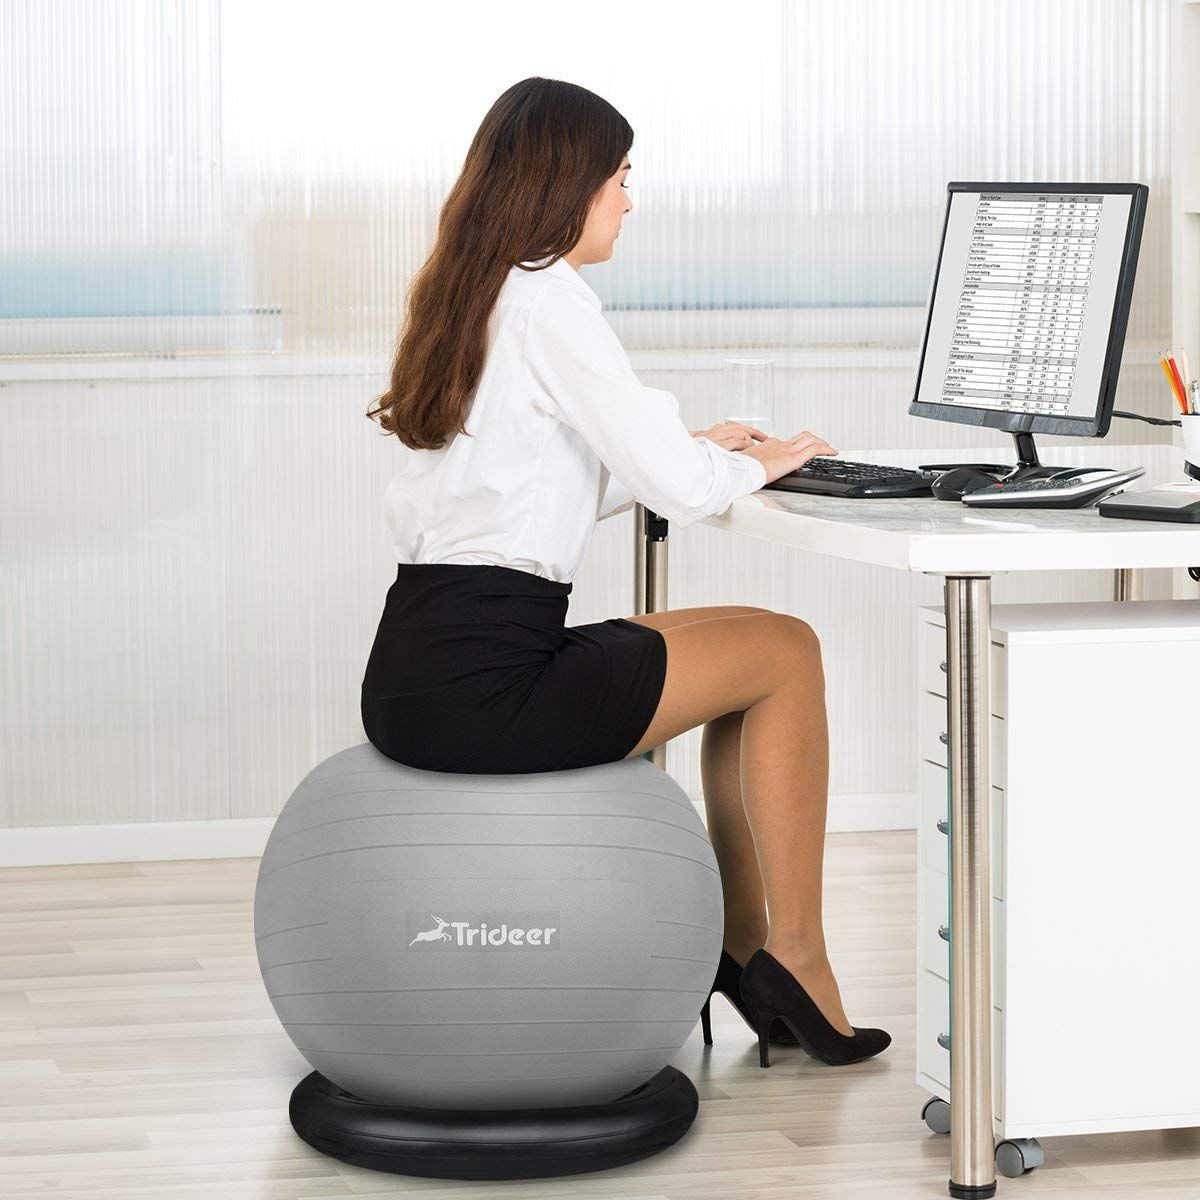 Trideer Exercise Ball Chair 75cm & 9 Best Ergonomic Office Chairs According to Doctors: 2018